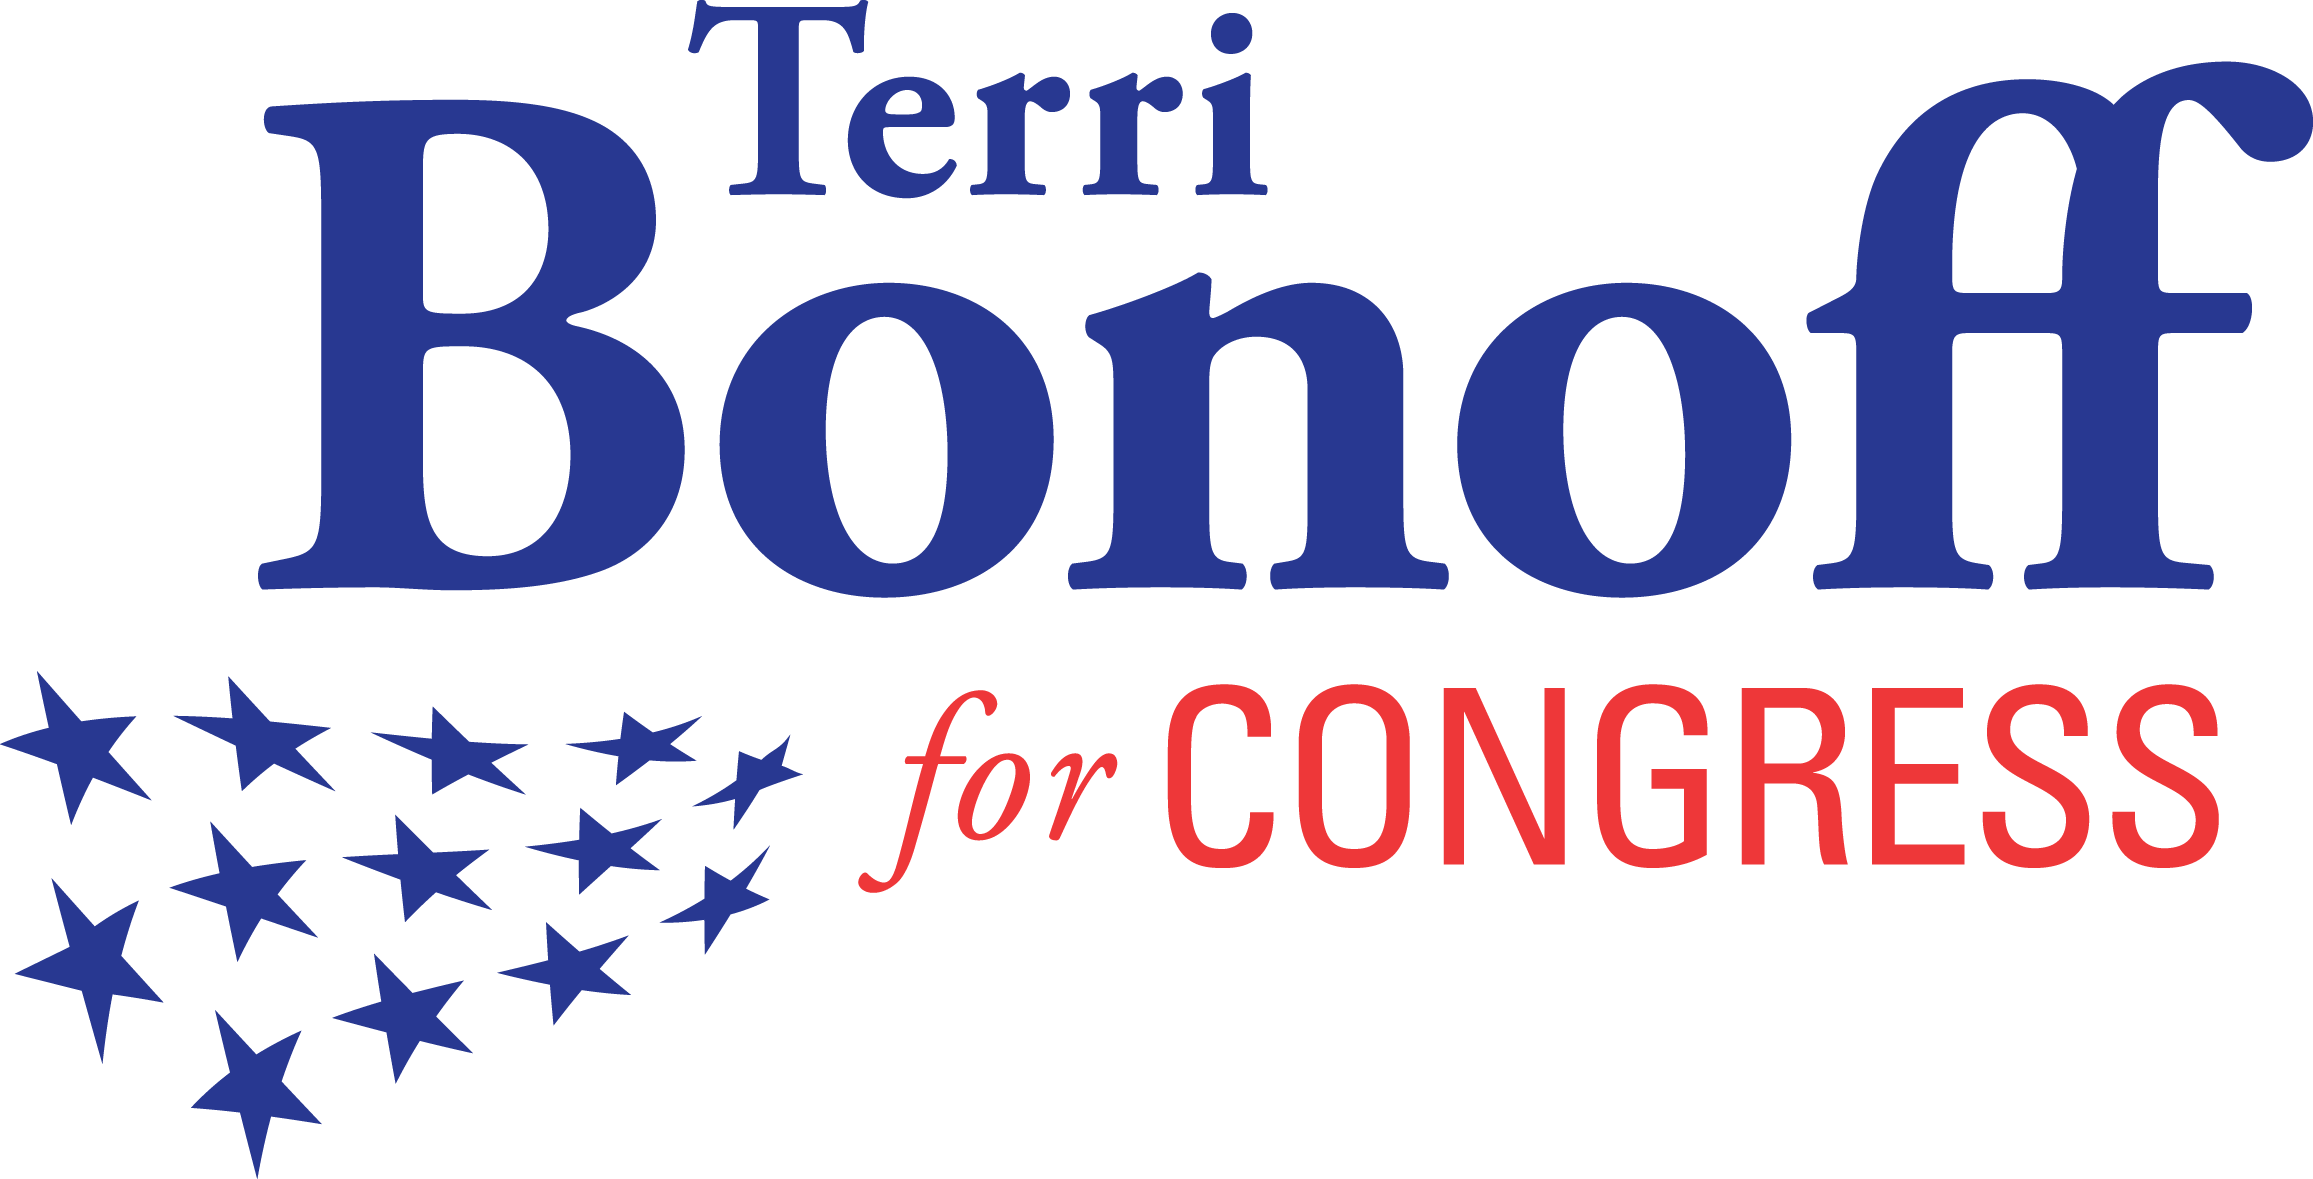 Terri Bonoff for Congress